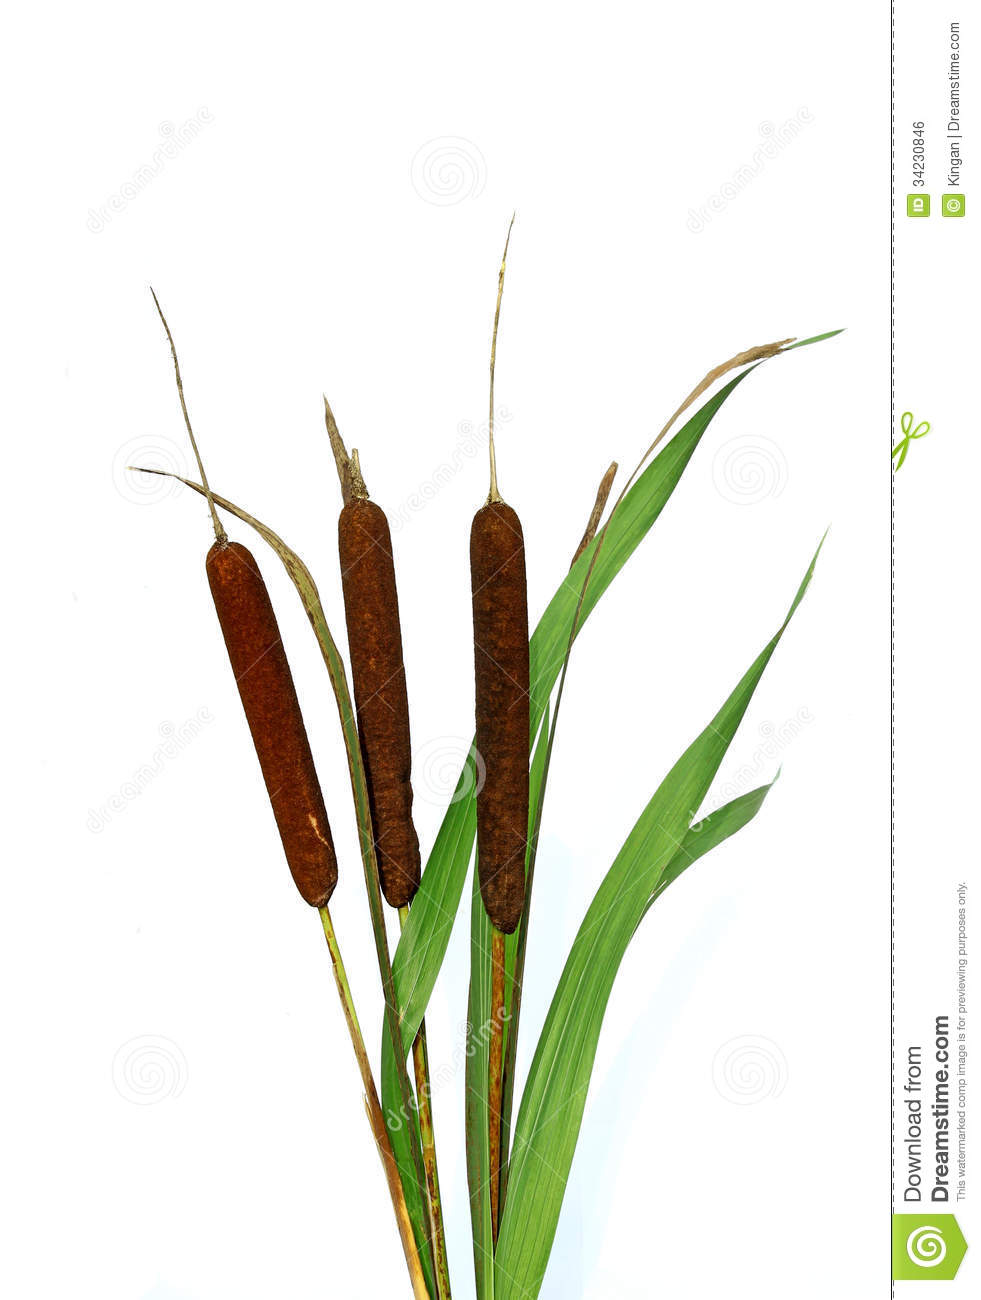 Plant Reeds Isolated Stock Photo Image Of Cane Nature 34230846